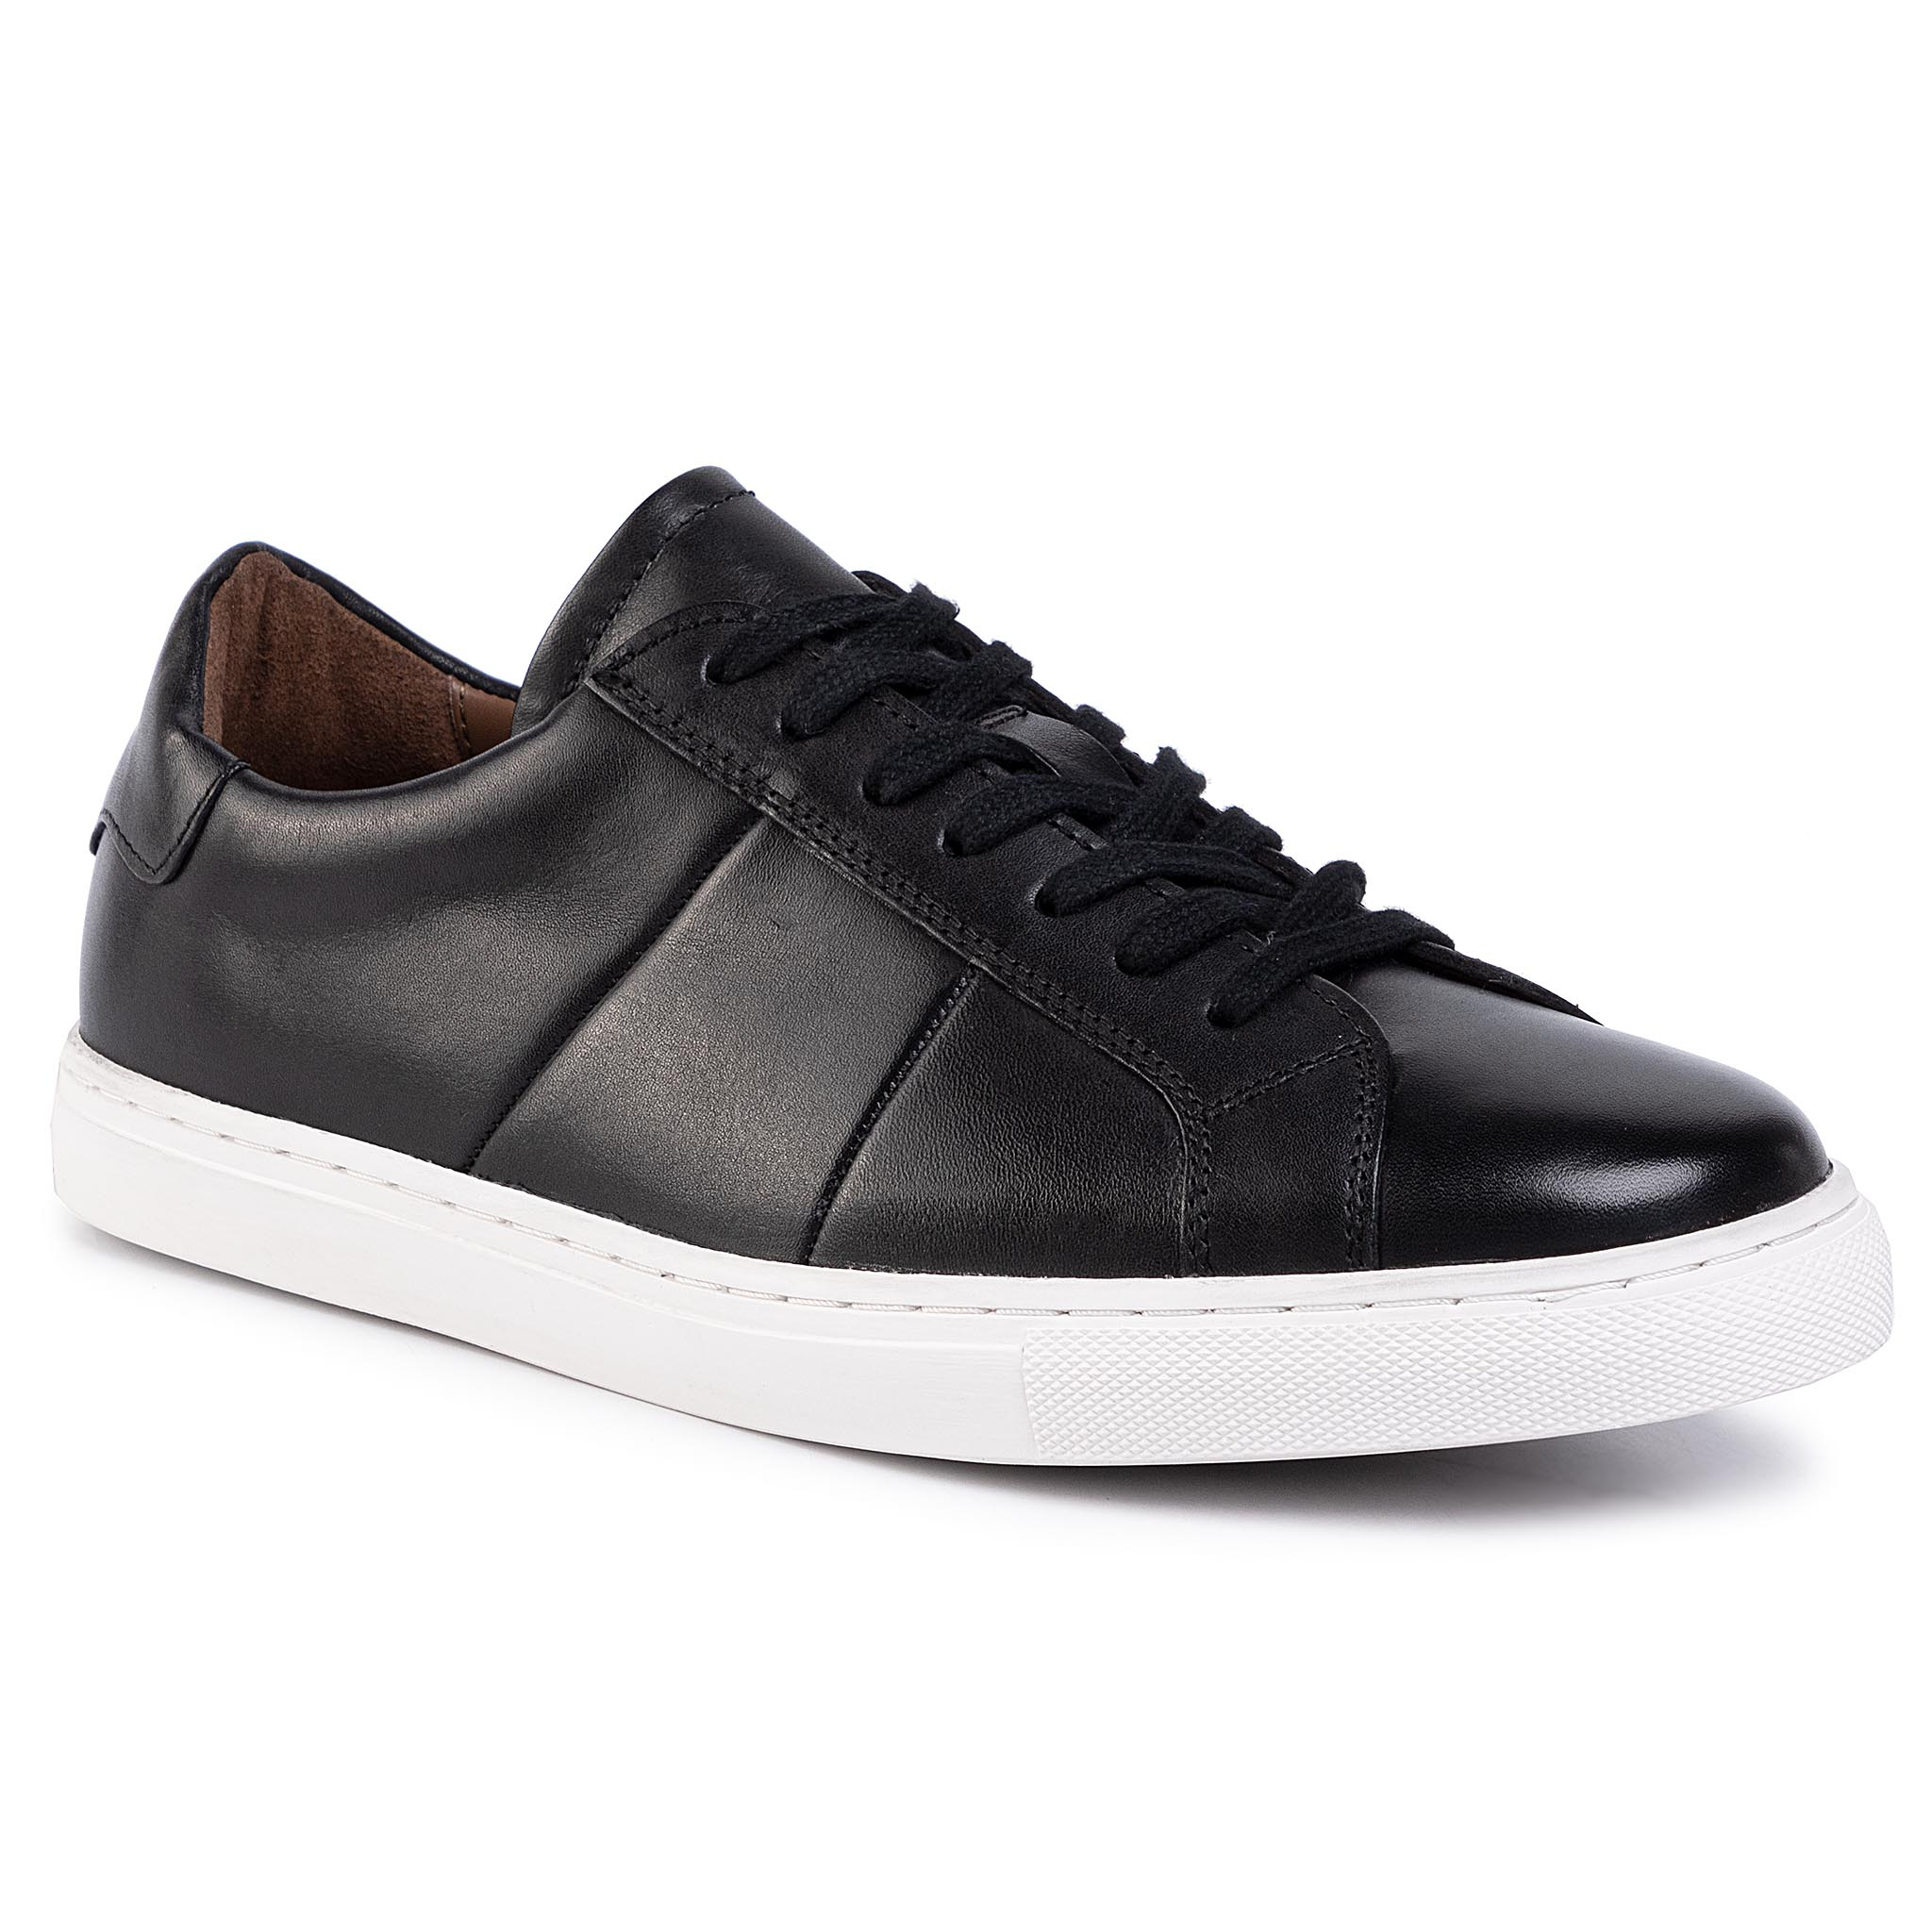 Sneakers DIGEL - Slade 1299728 10